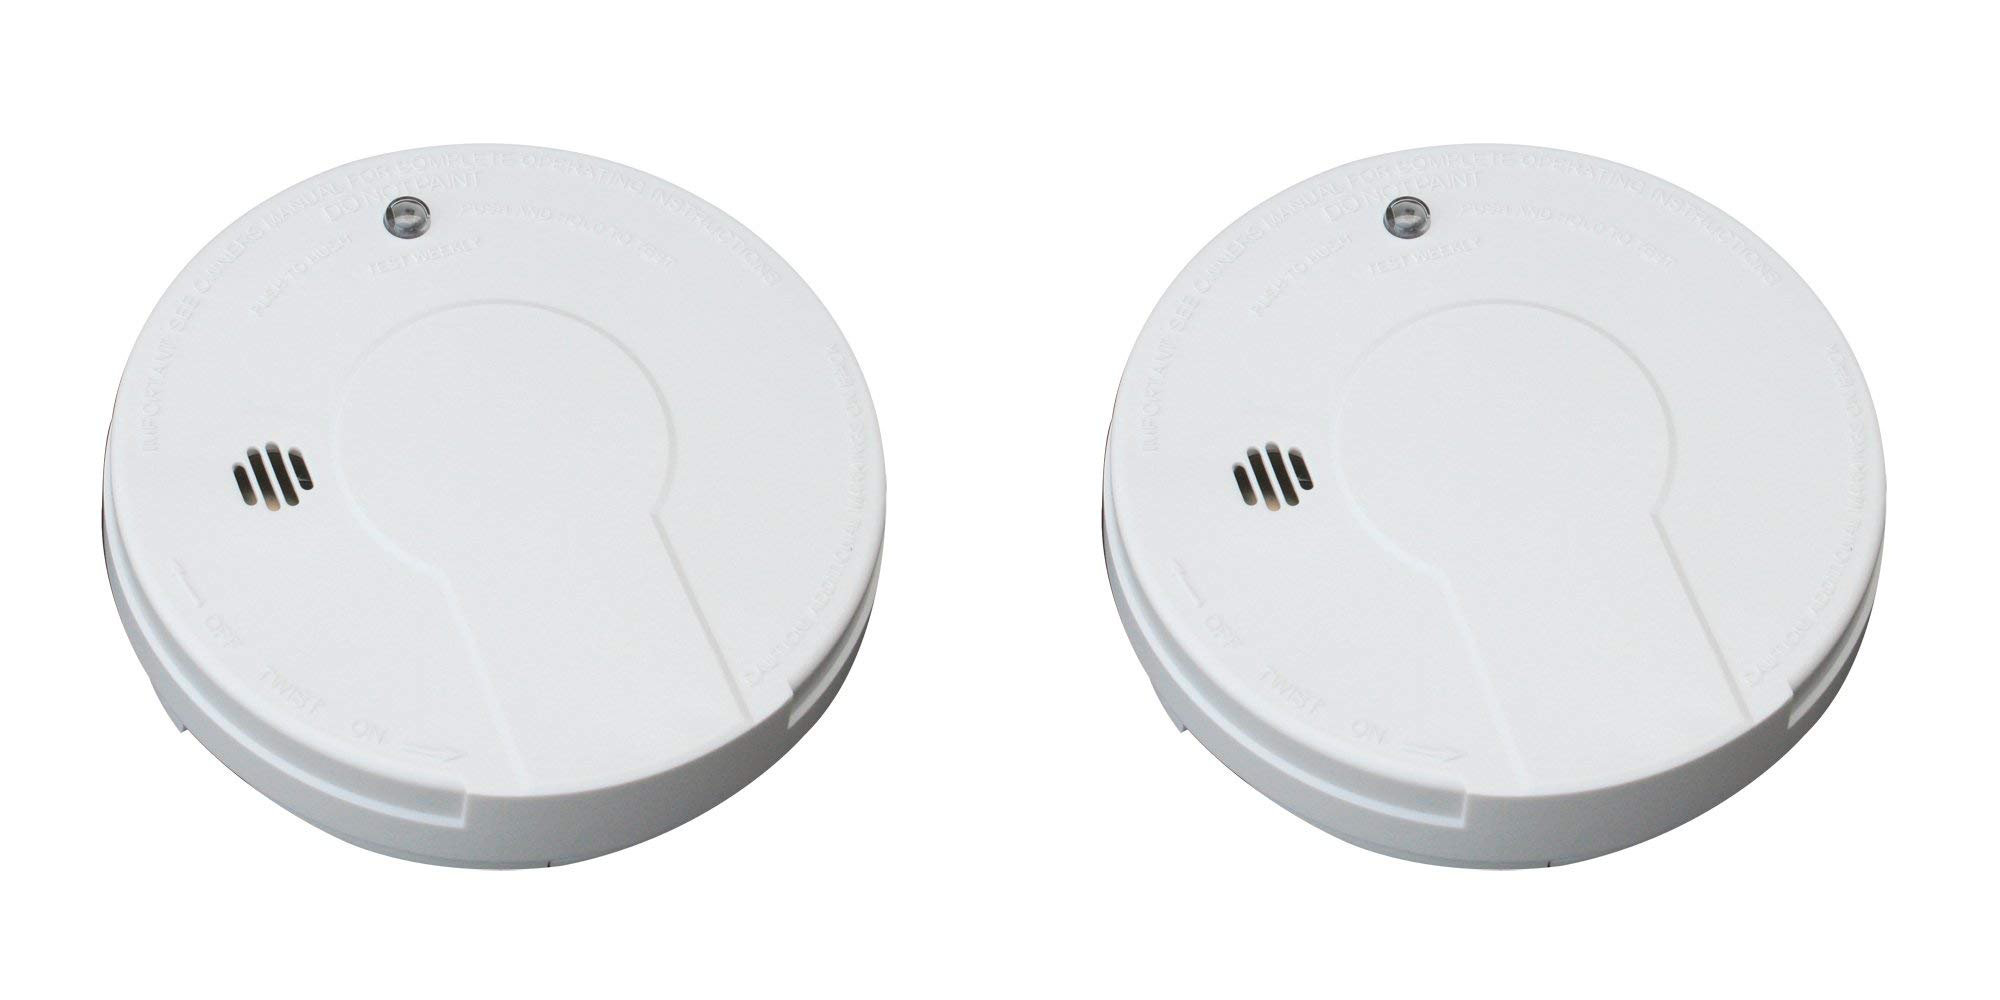 Give yourself additional layers of protection w/ Kidde's Smoke Alarms at $6.50 each (over 35% off)